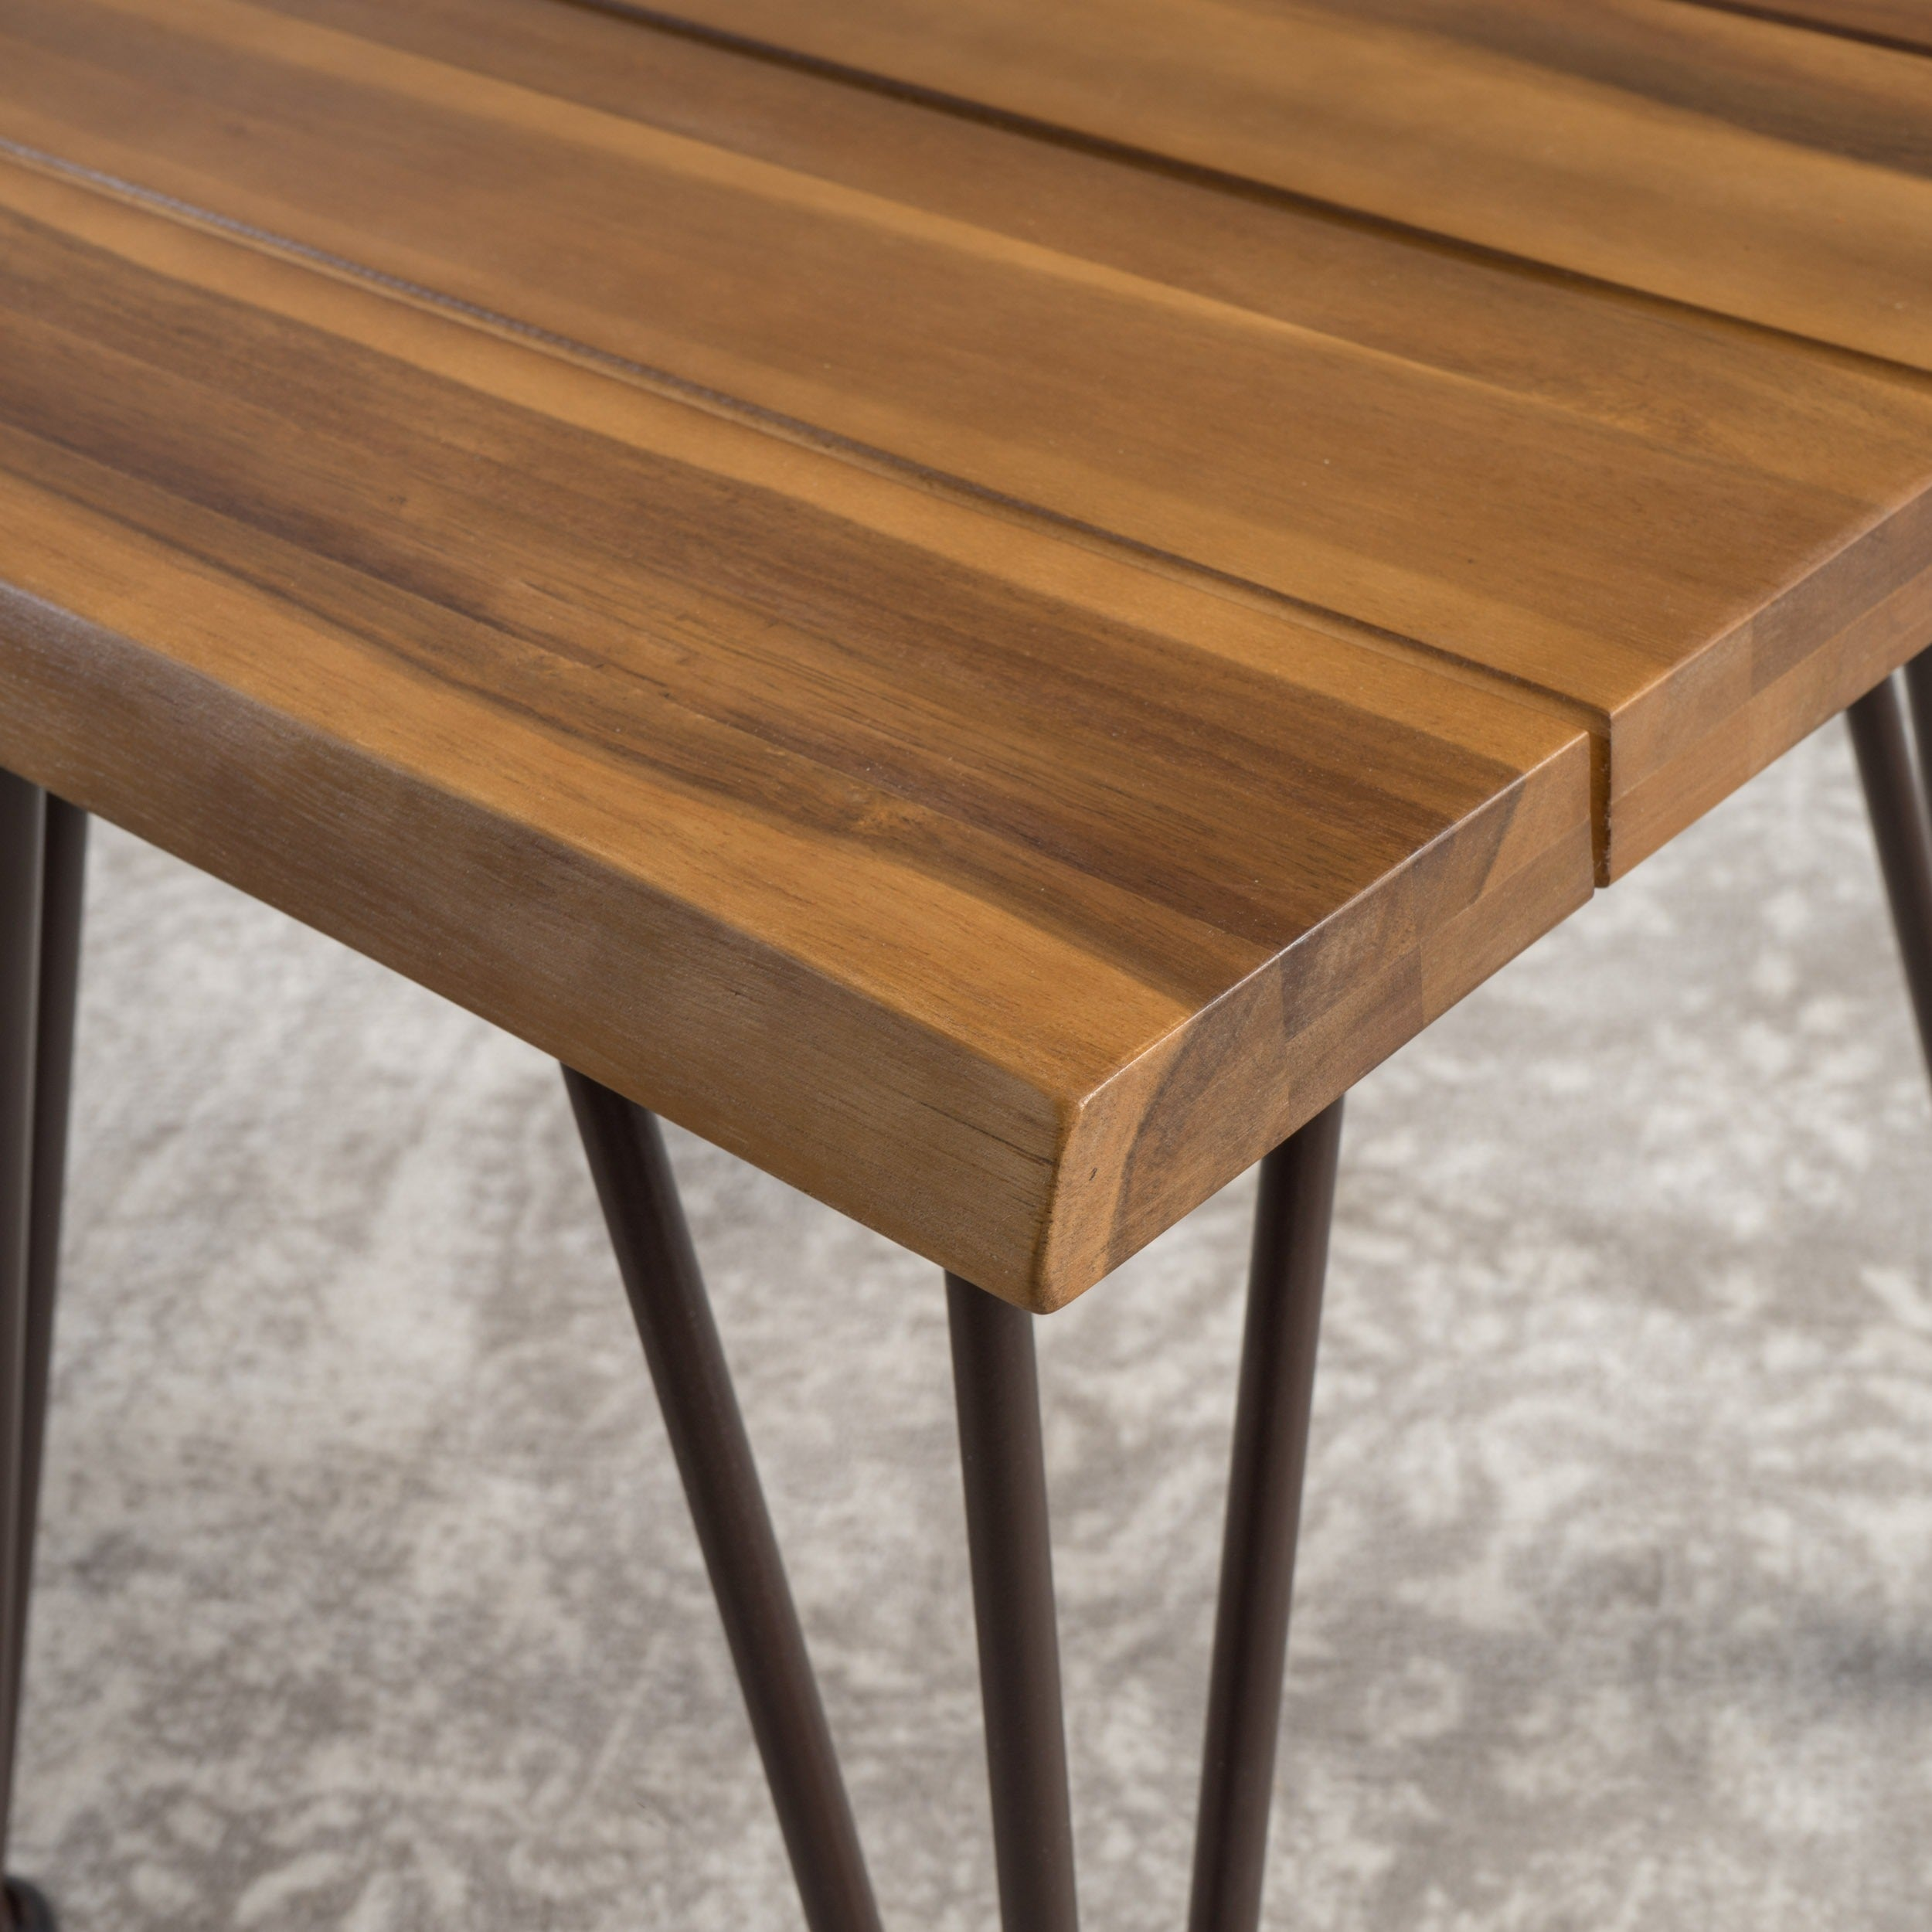 Shop geania acacia wood industrial side table by christopher knight home on sale free shipping today overstock com 16718561